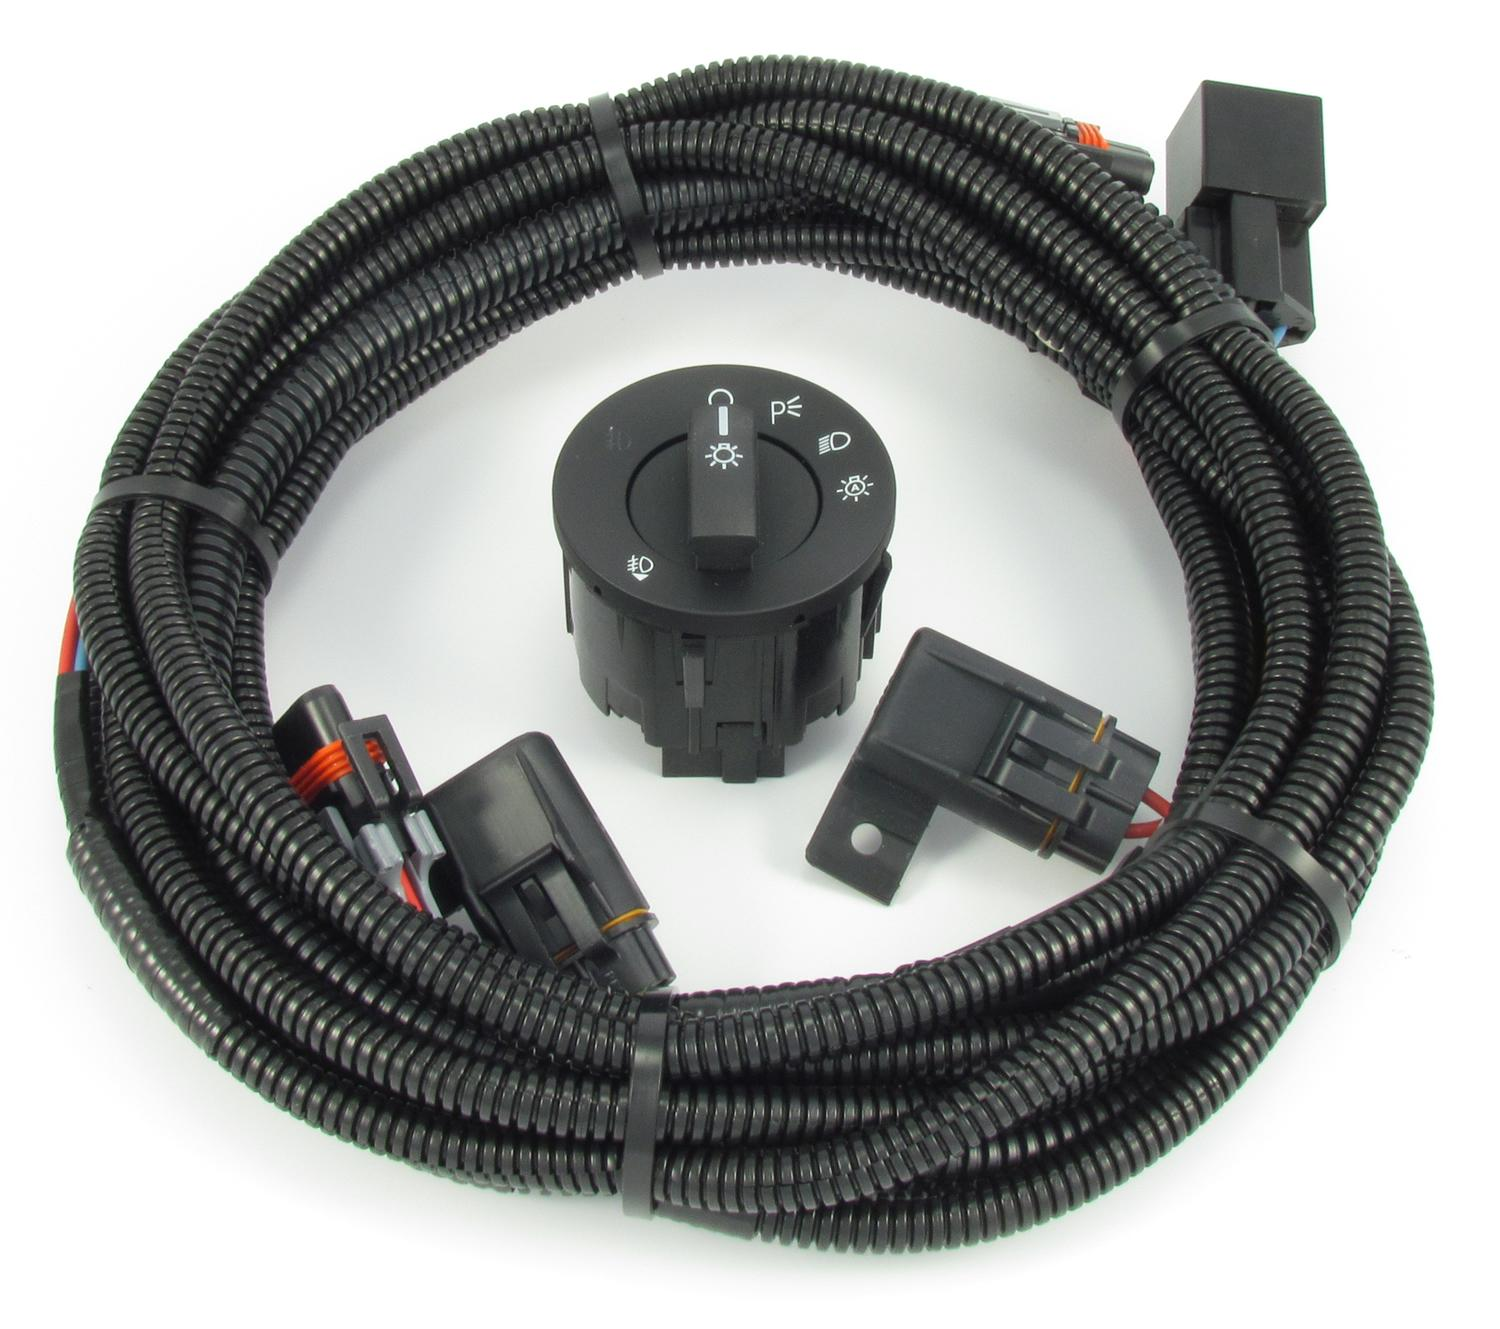 3551 fog light wiring & switch kit fits v6 and boss 302 (2013 2014) Fog Light Wiring Diagram at gsmportal.co